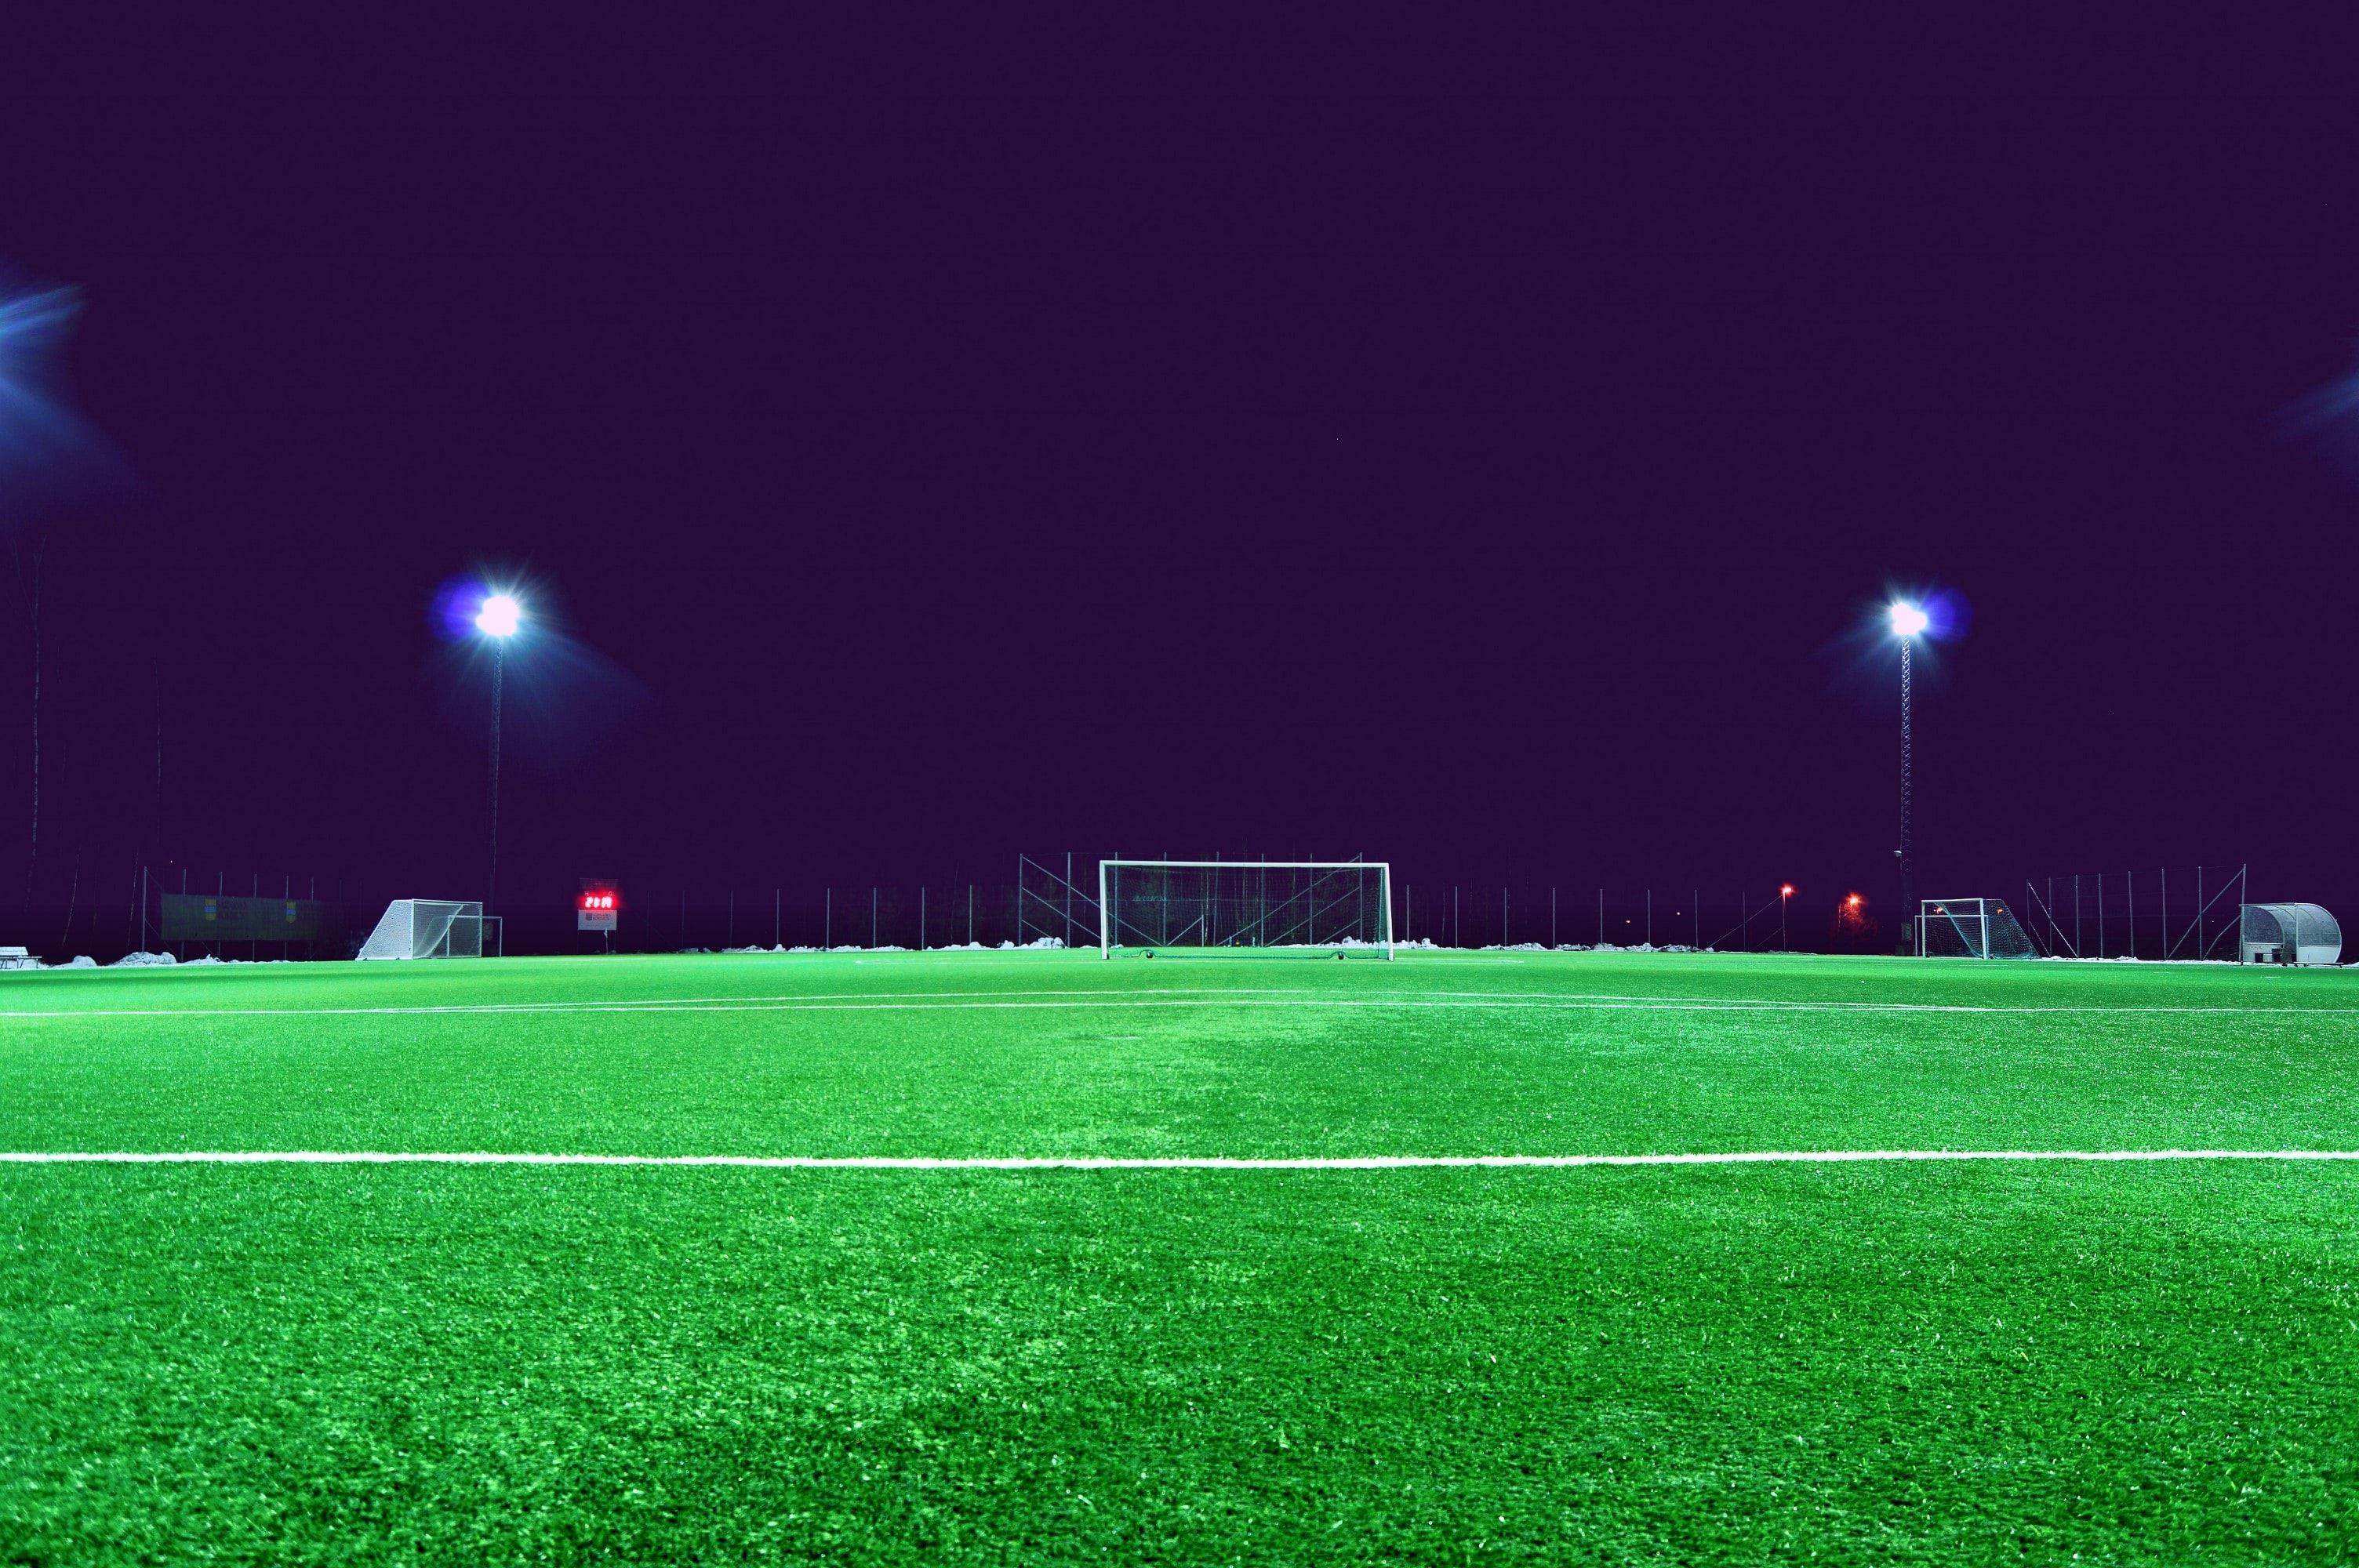 A photograph of a green soccer field at night, with a dark sky and two tall LED lights on either side of the goal post.